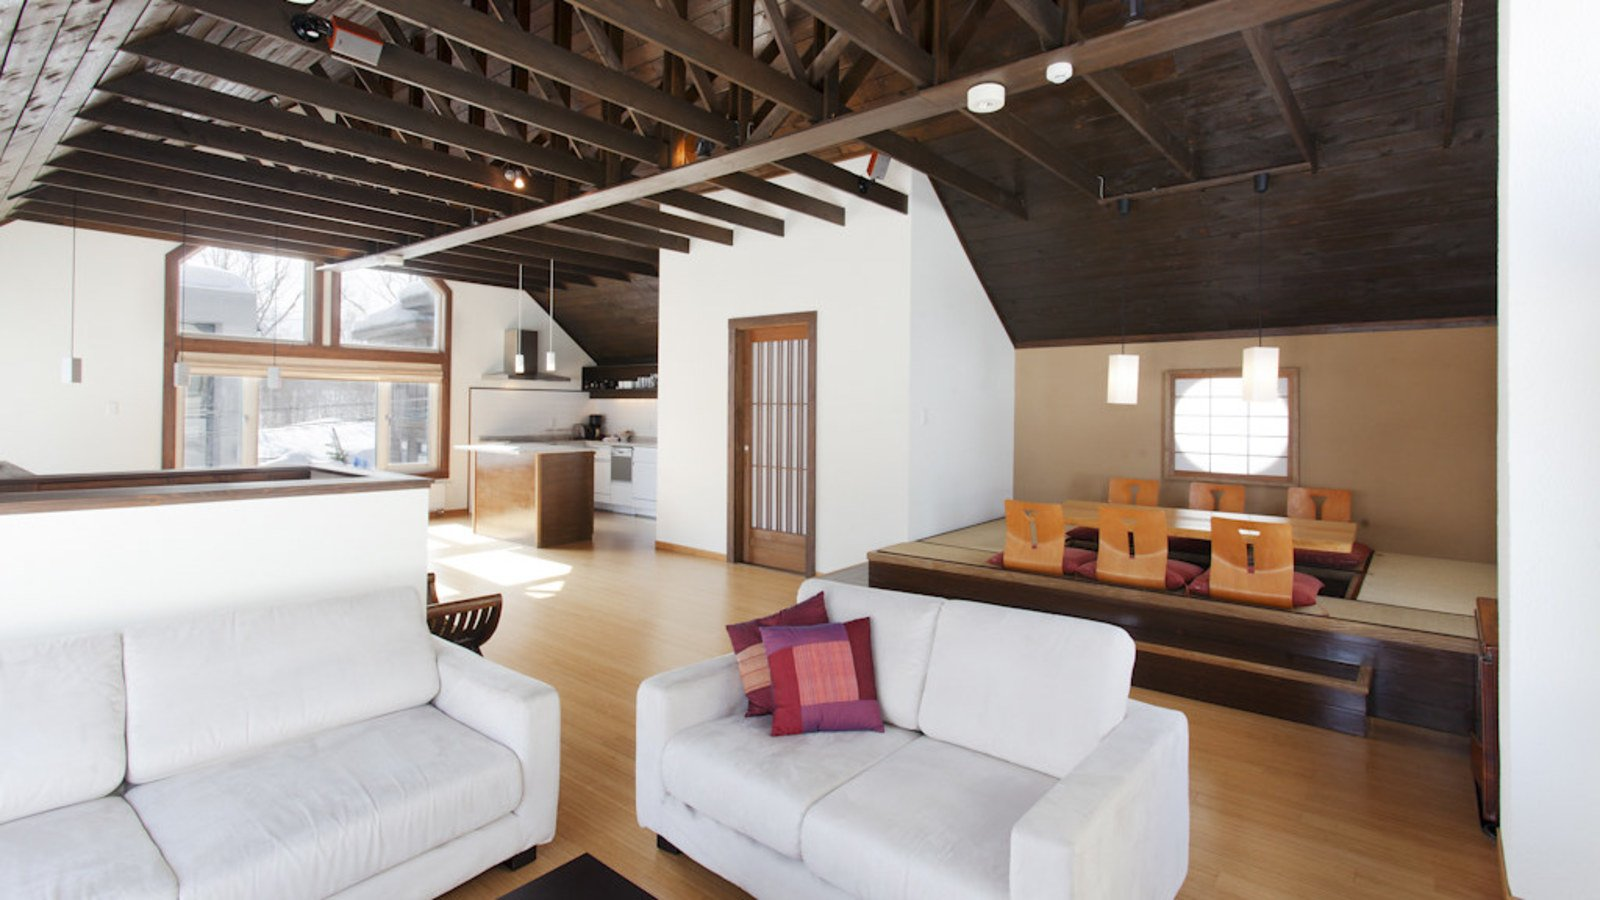 The culture-fusion living room in Ginsetsu, a 3 bedroom house in Niseko.